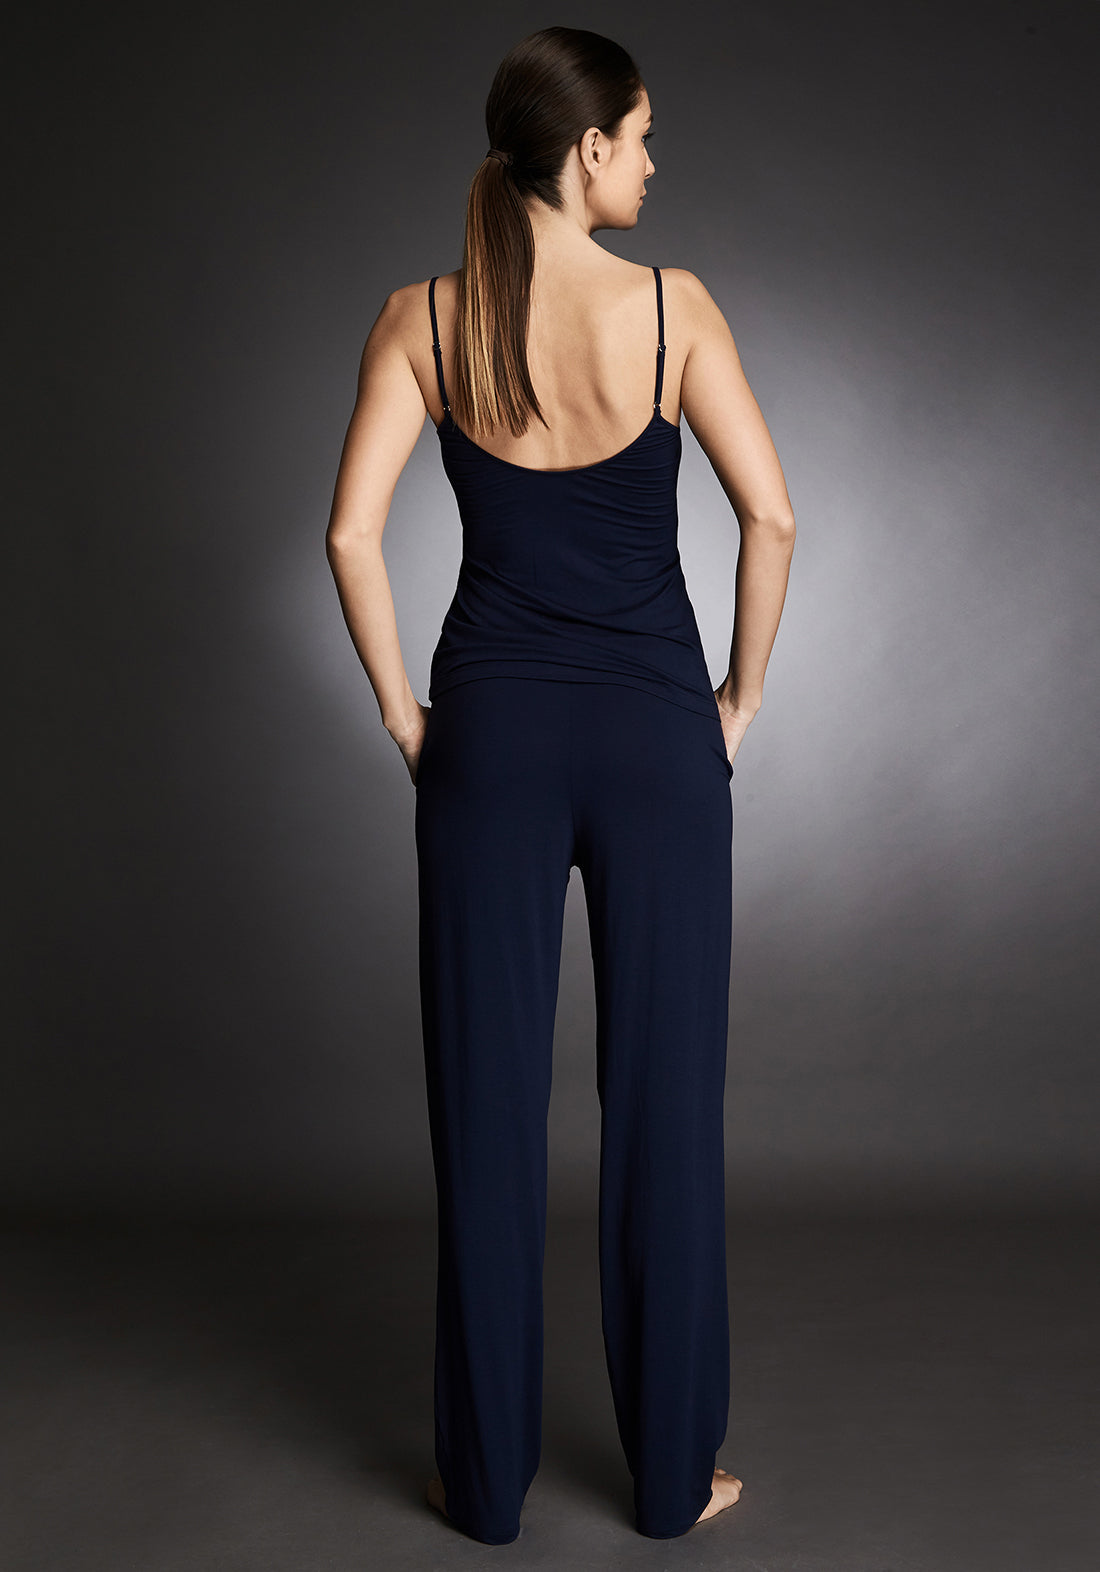 Isolde Long Pants in Navy Blue